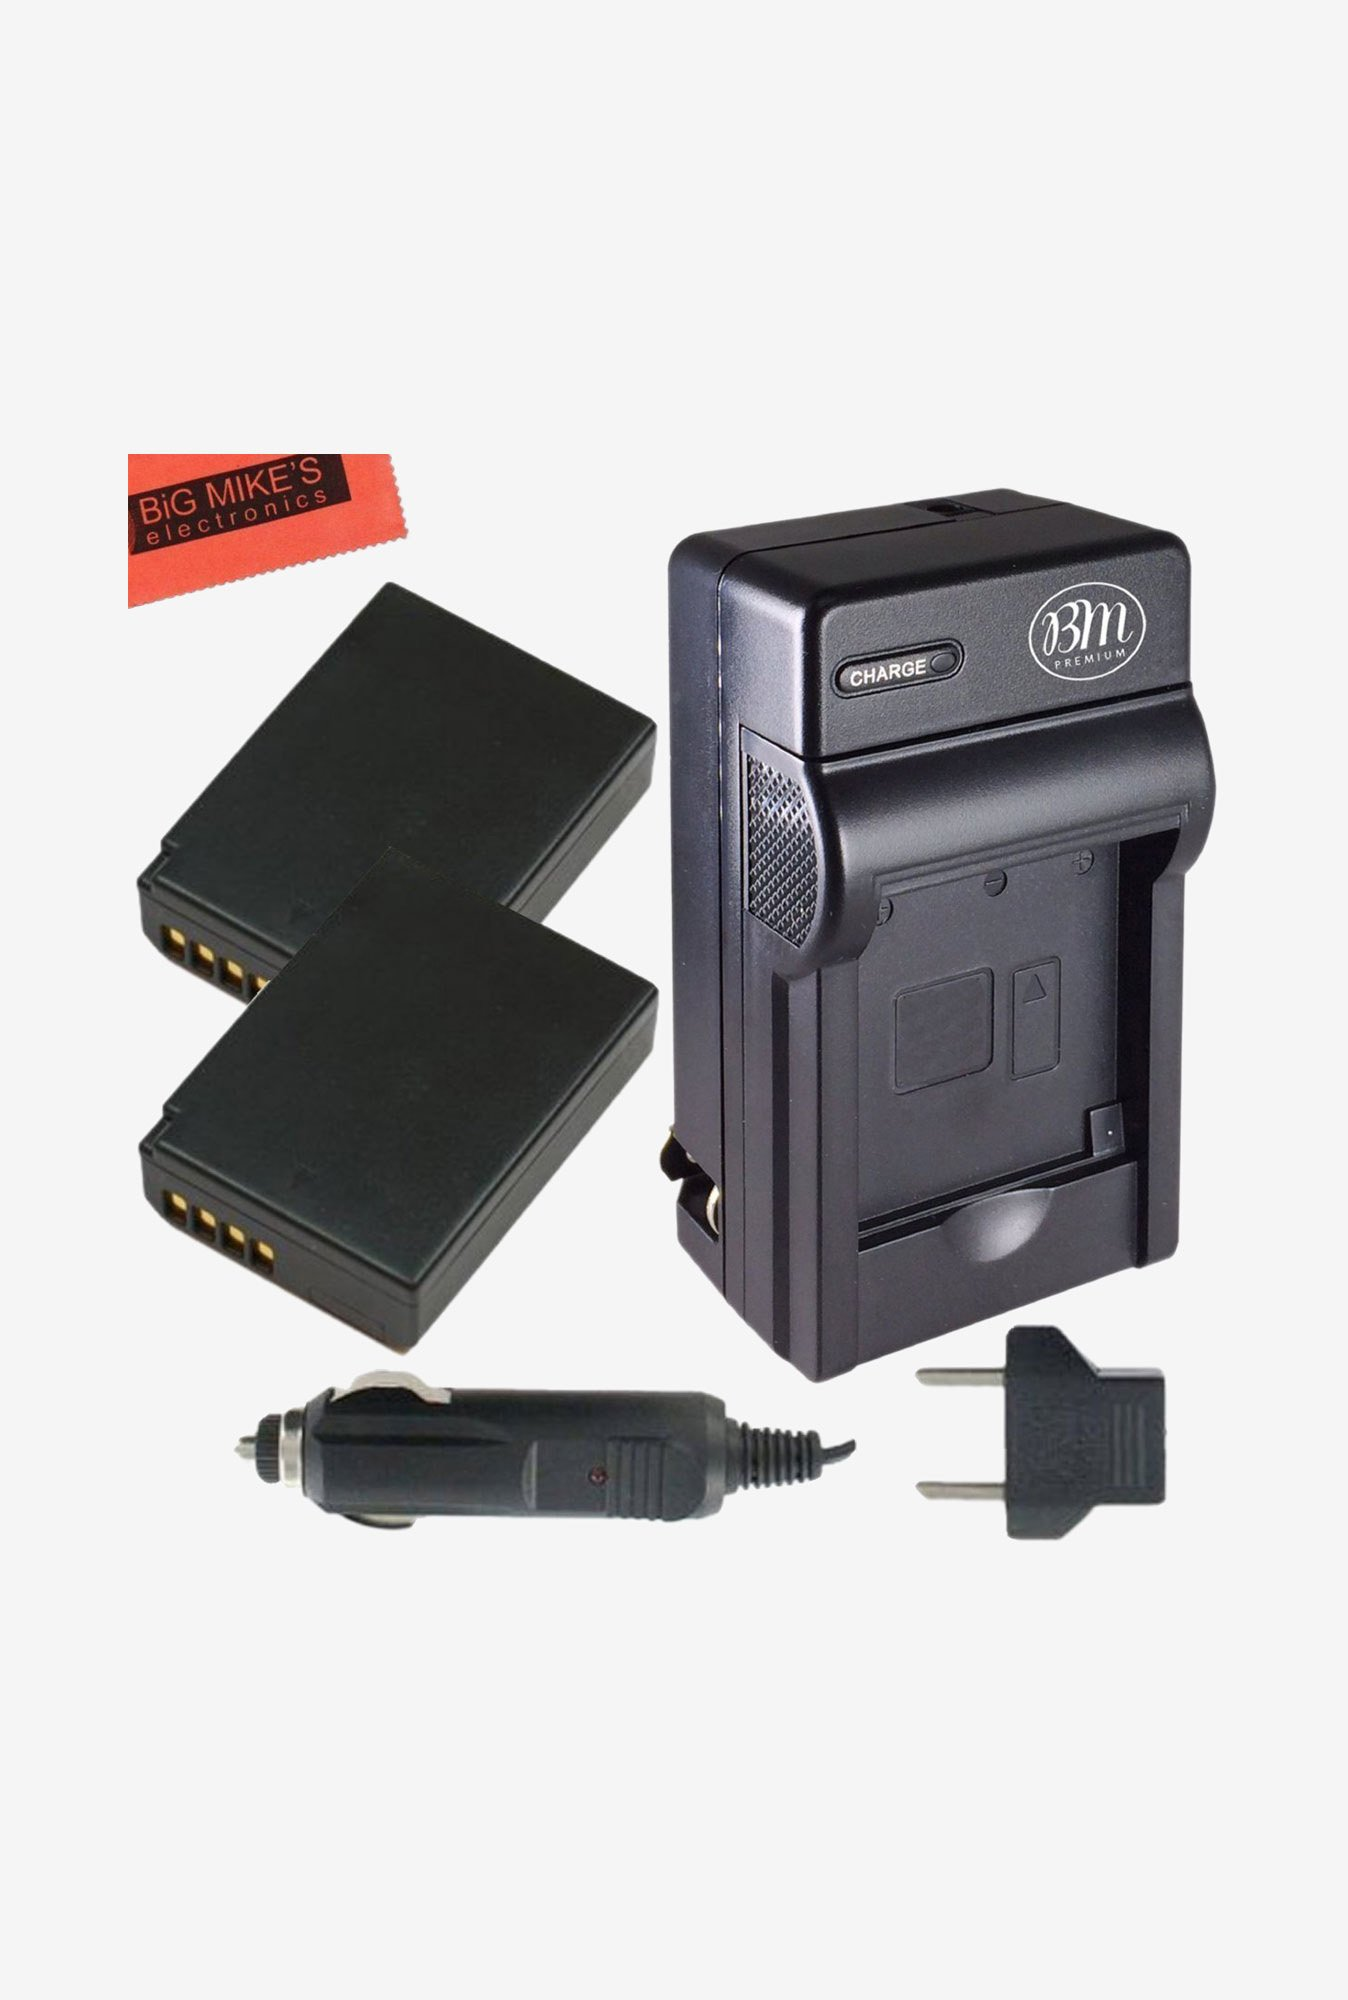 Big Mike's Lp-E10 1100 mAh Battery & Charger Kit (Black)